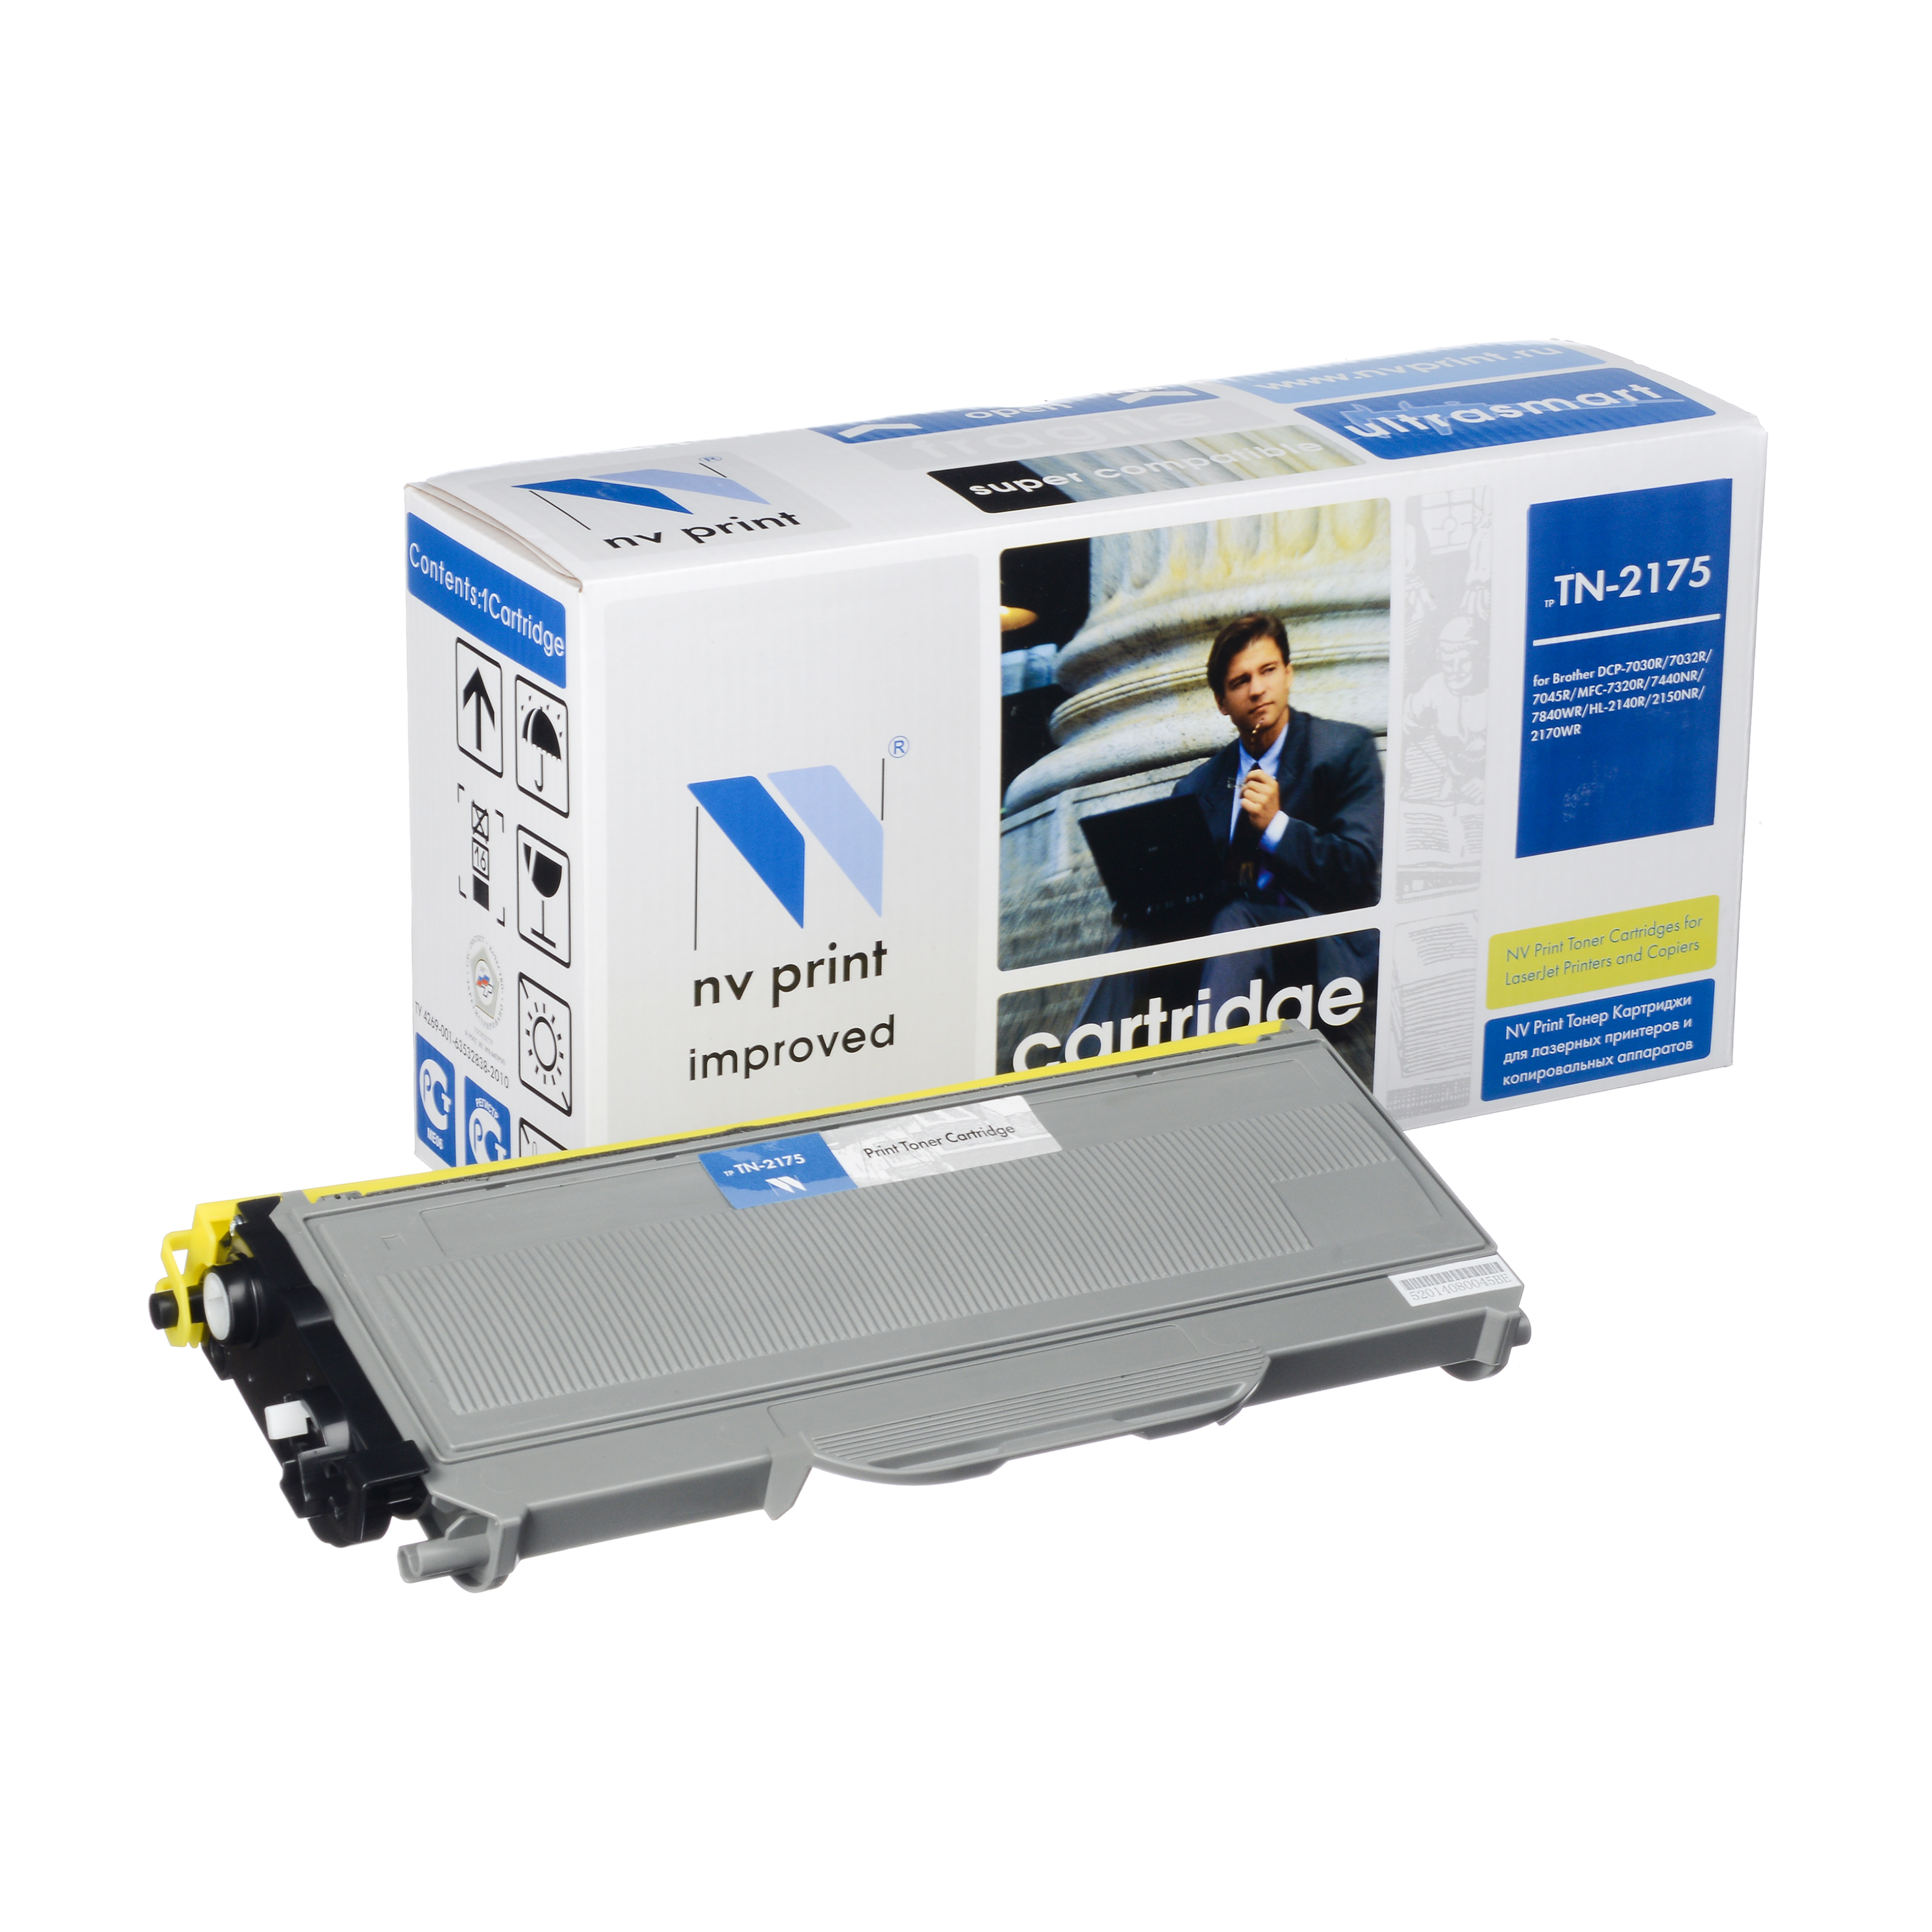 Картридж NV Print Brother TN-2175Картридж NV Print для Brother HL-2140R/2150NR/2142/2170R/DCP-7030R/7032R/7045R/MFC-7320R/7440NR/7840WRКартридж NV Print для Brother HL-2140R/2150NR/2142/2170R/DCP-7030R/7032R/7045R/MFC-7320R/7440NR/7840WR